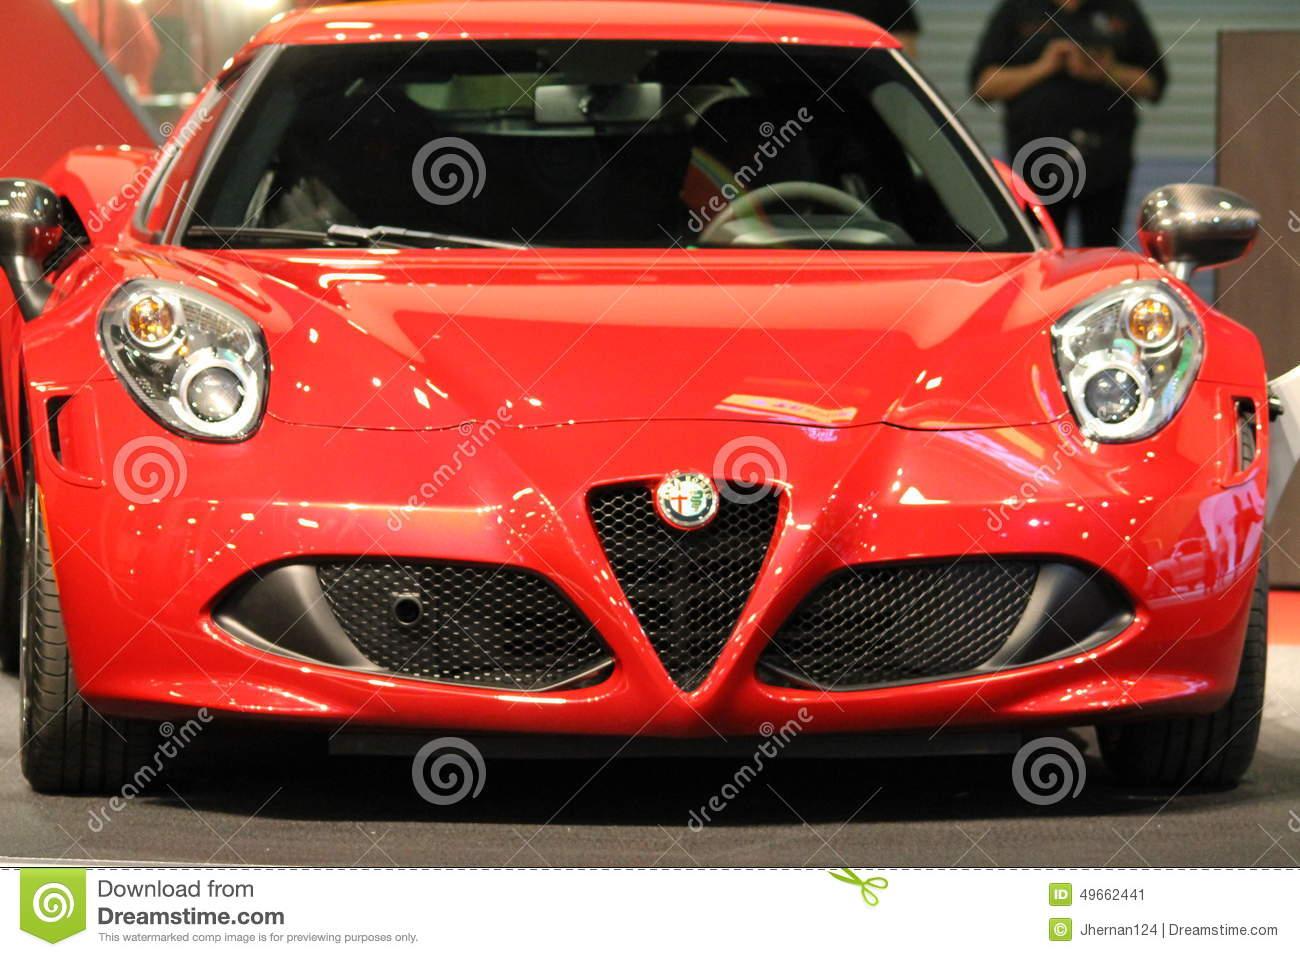 South Florida Car Shows: New Alfa Romeo Sportscar Editorial Photo